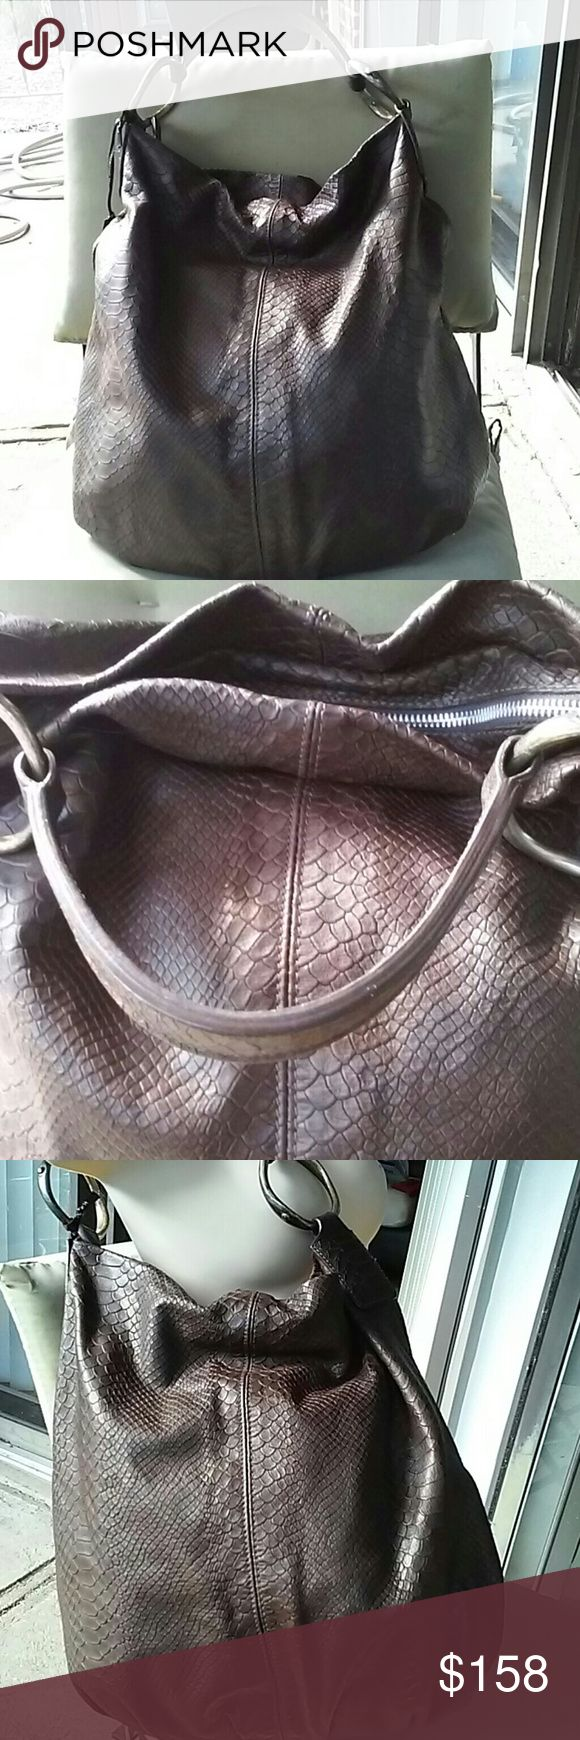 Gianni Chiarini genuin leather snake skin hobo NWT Vary soft brown leather, made in Italy,comes with dust bag,snake skin embossed Gianni Chiarini  Bags